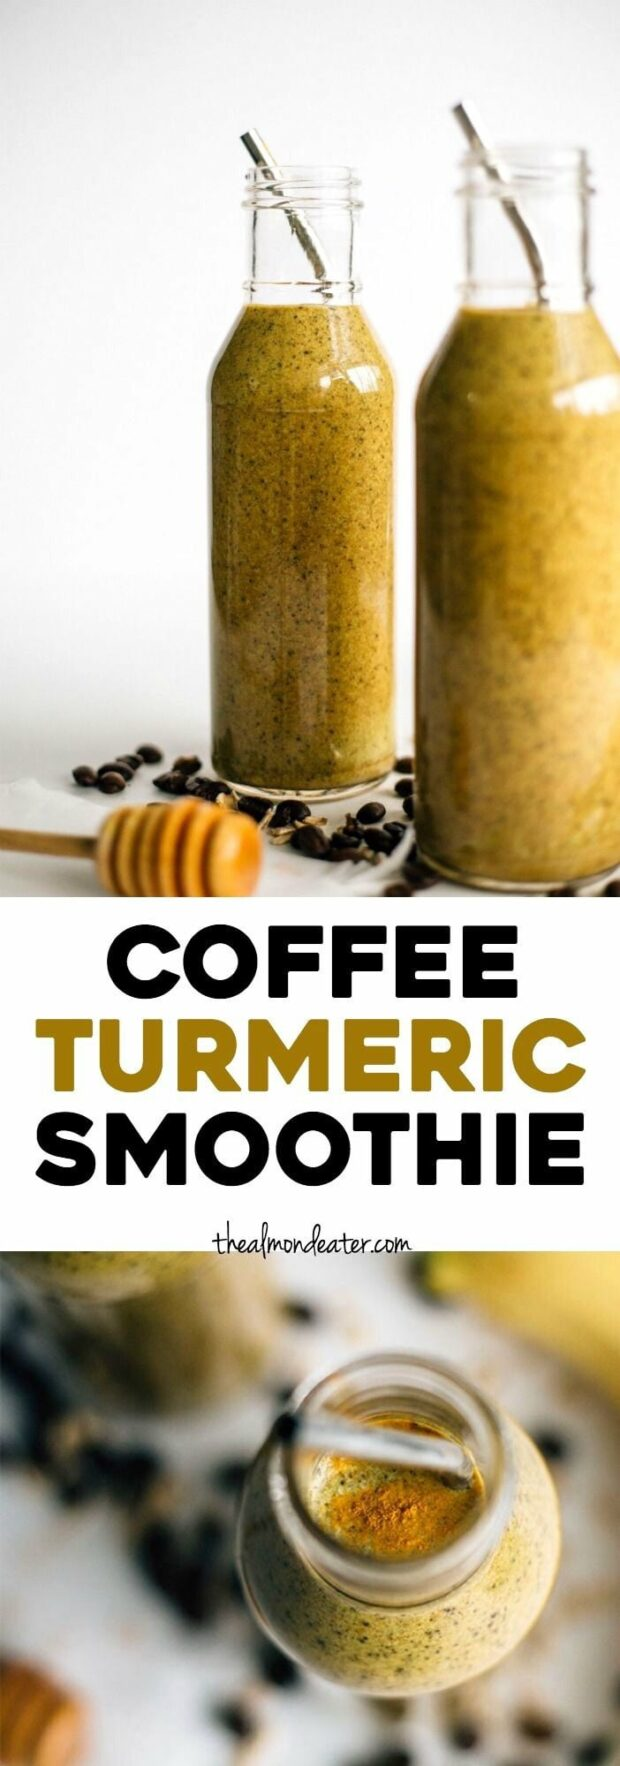 15 Healthy Turmeric Smoothie Recipes